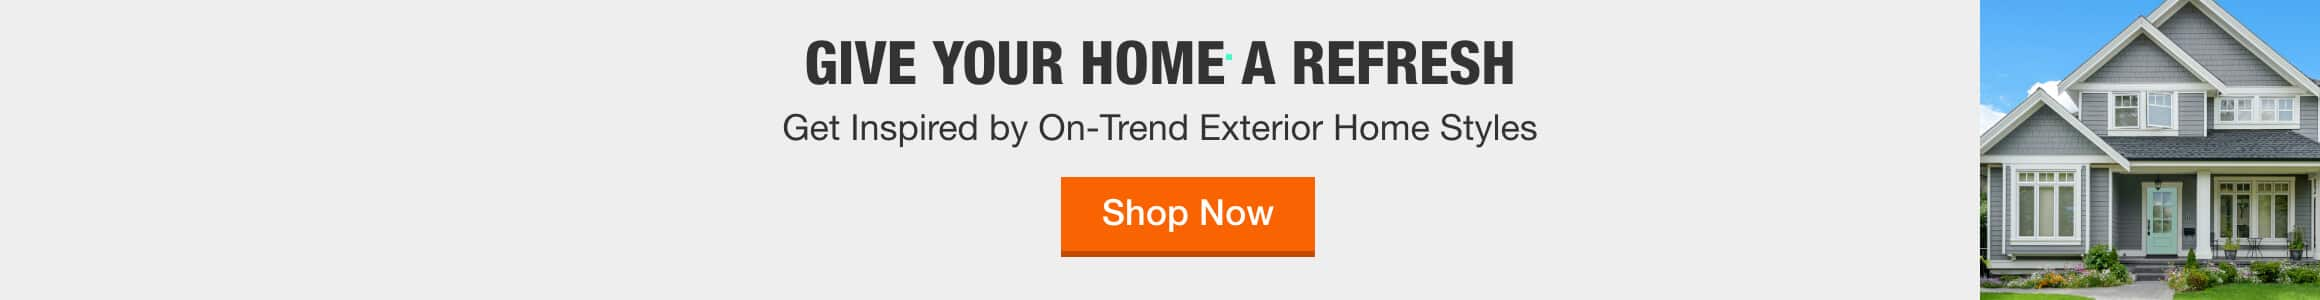 GIVE YOUR HOME A REFRESH - Get Inspired by On-Trend Exterior Home Styles > Shop Now